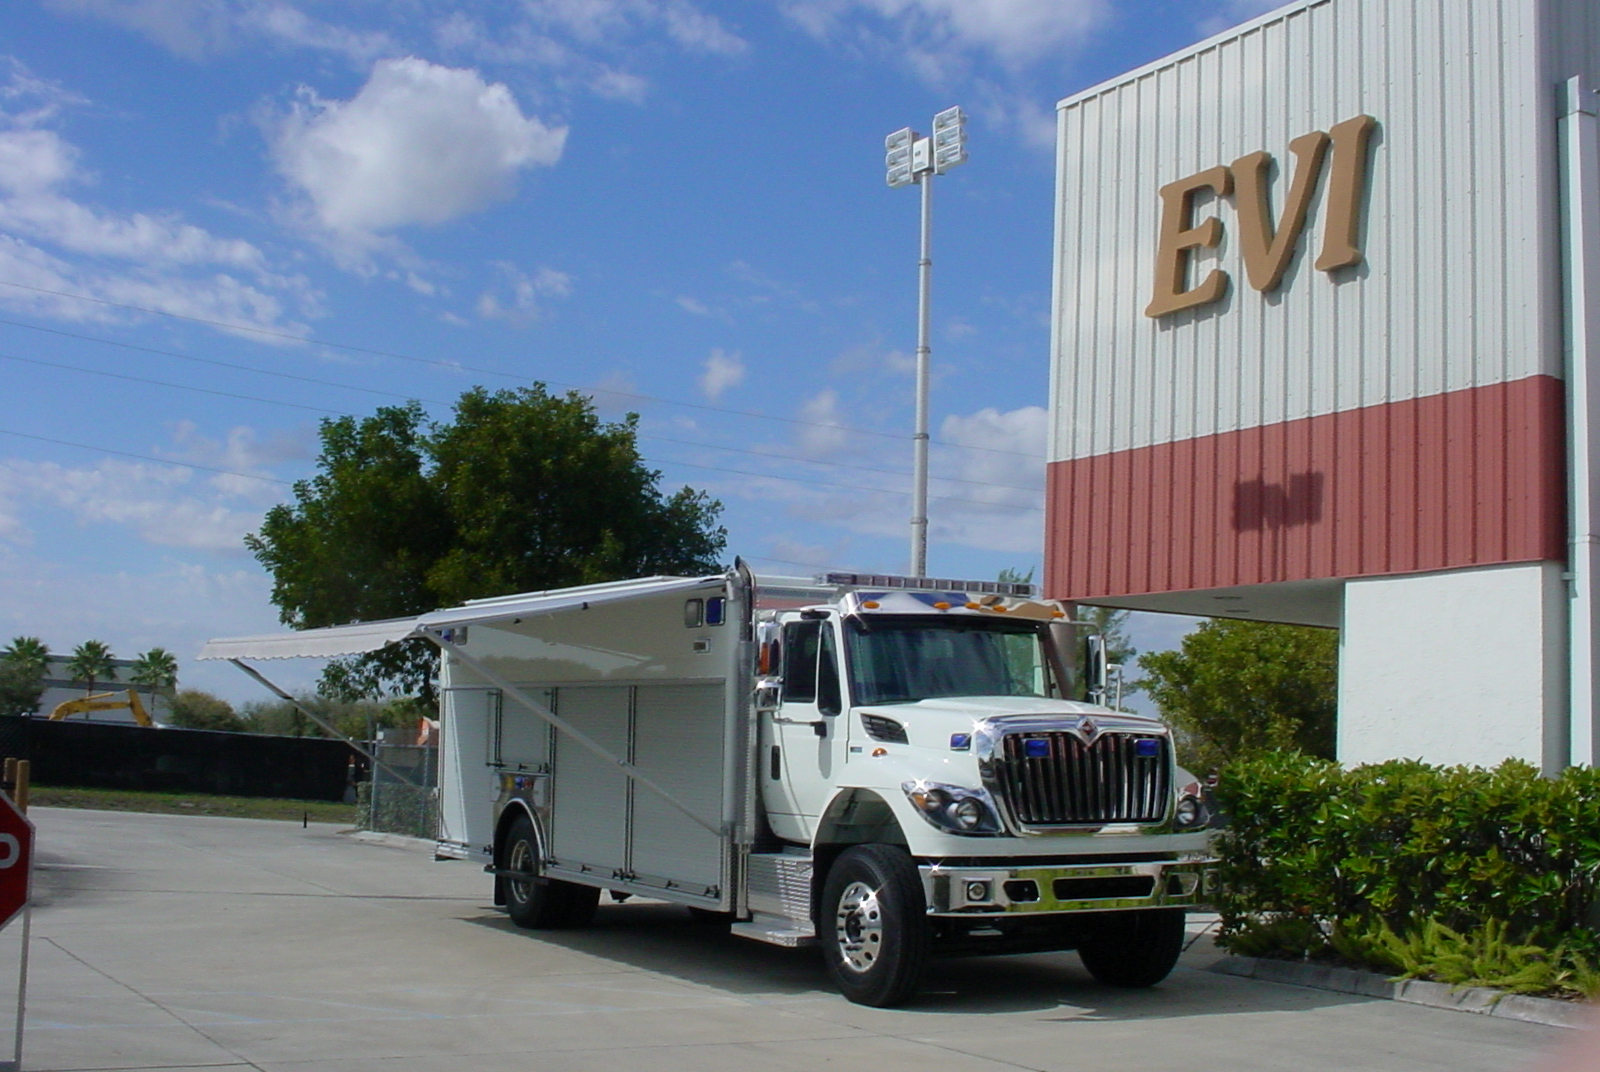 22-Ft. Incident Response Vehicle